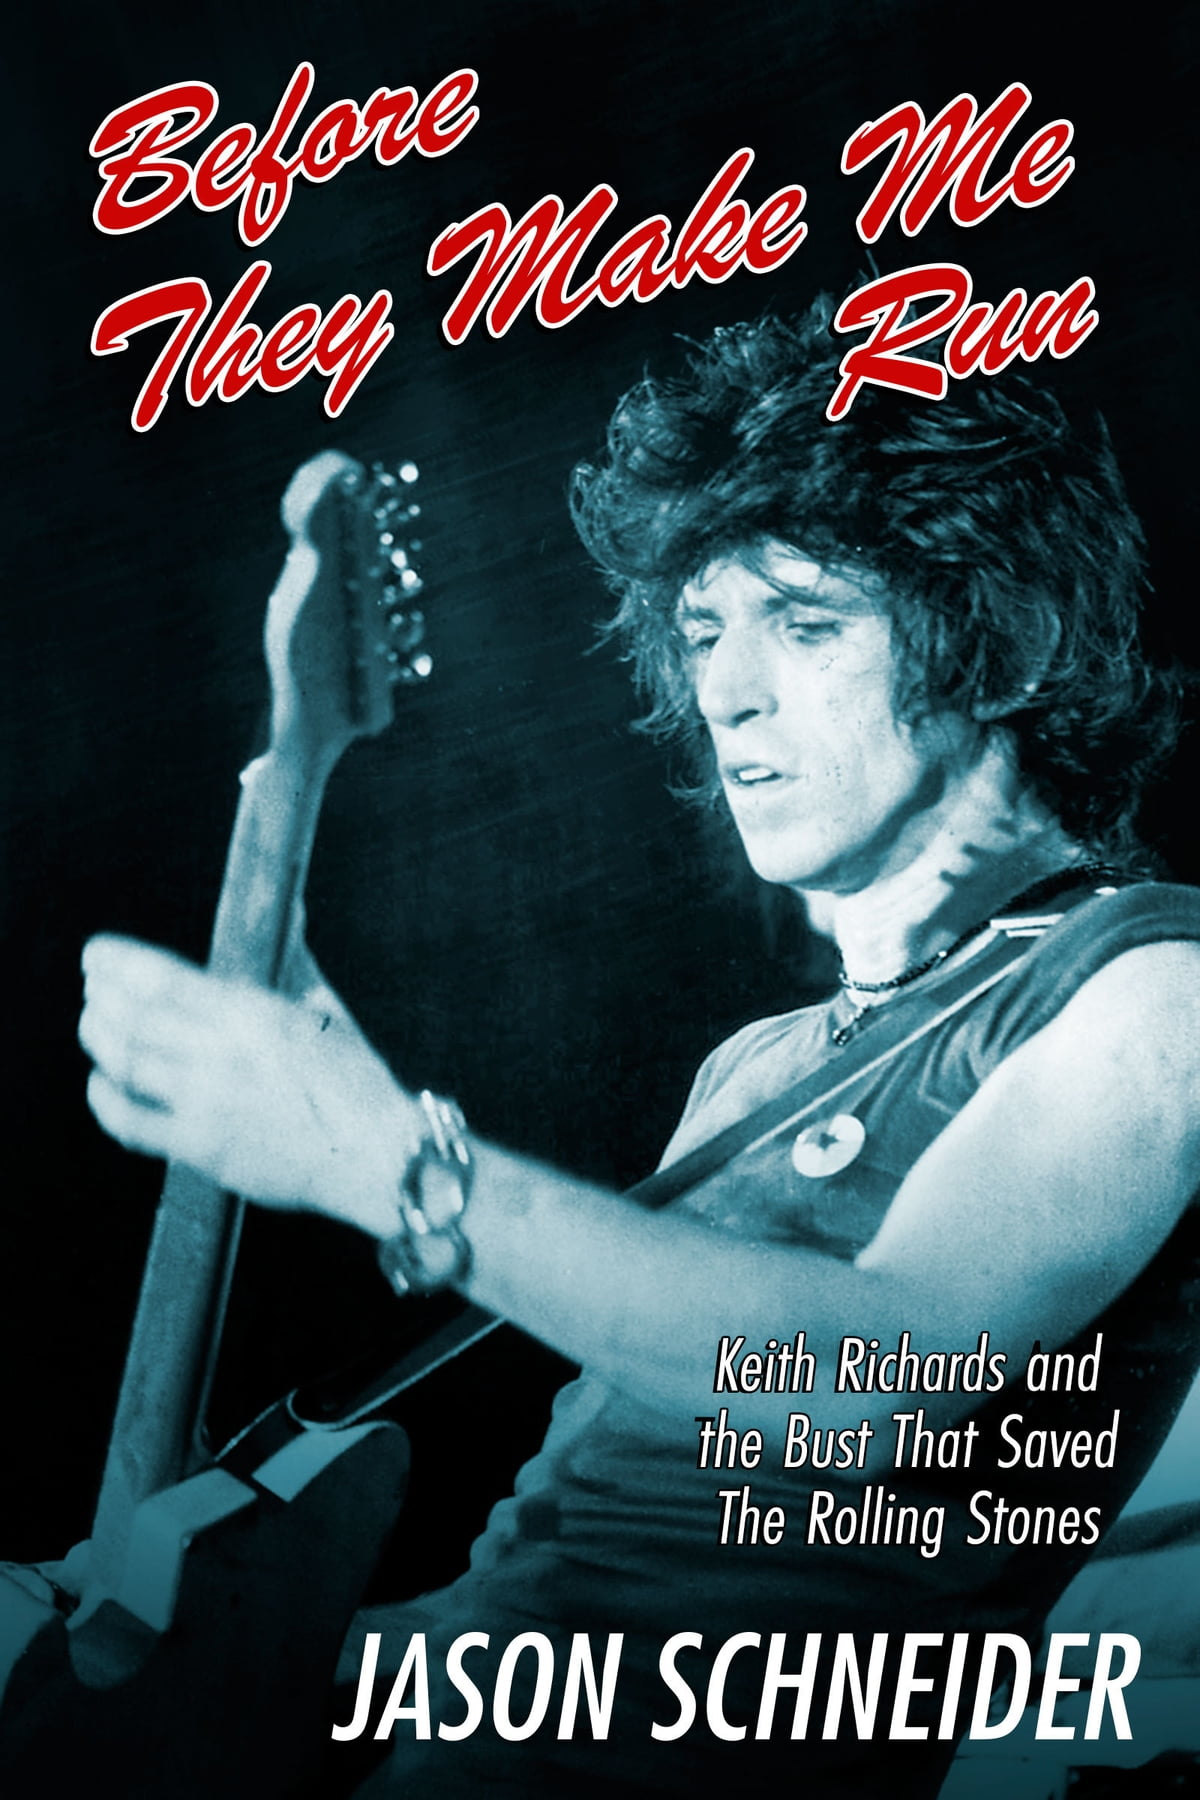 Libro De Keith Richards Before They Make Me Run Keith Richards And The Bust That Saved The Rolling Stones Ebook By Jason Schneider Rakuten Kobo